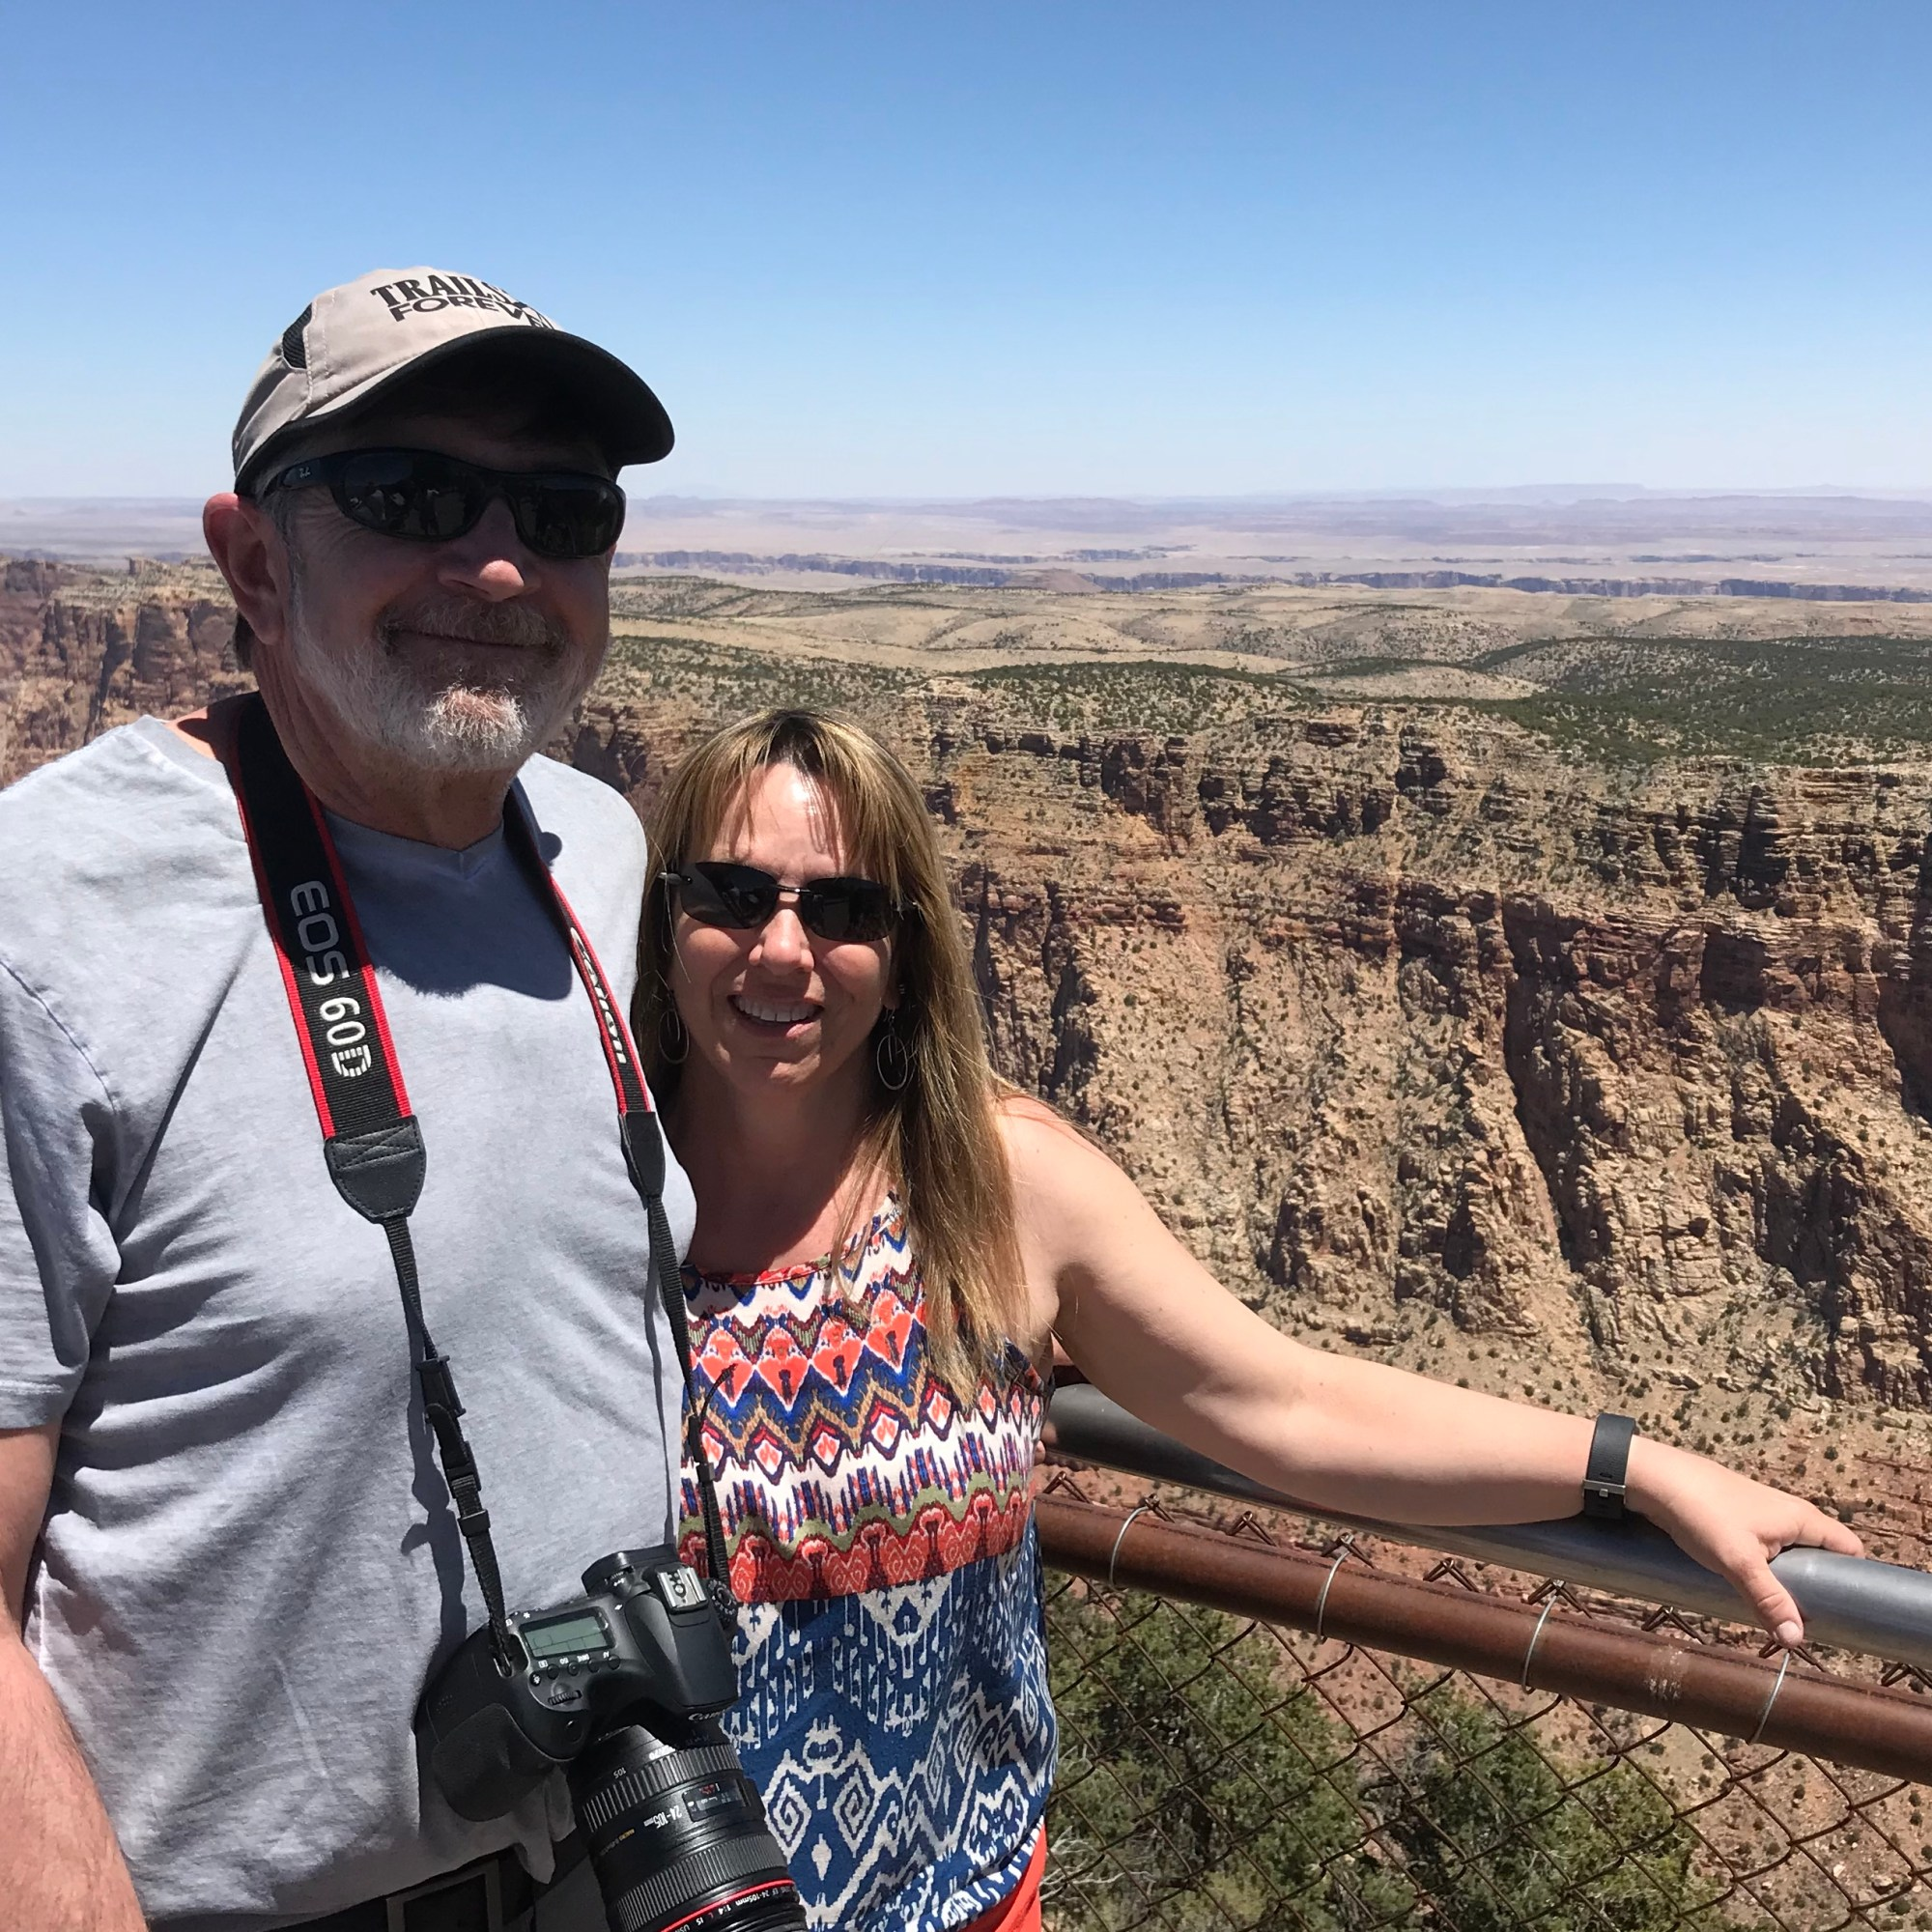 Couple at the Grand Canyon